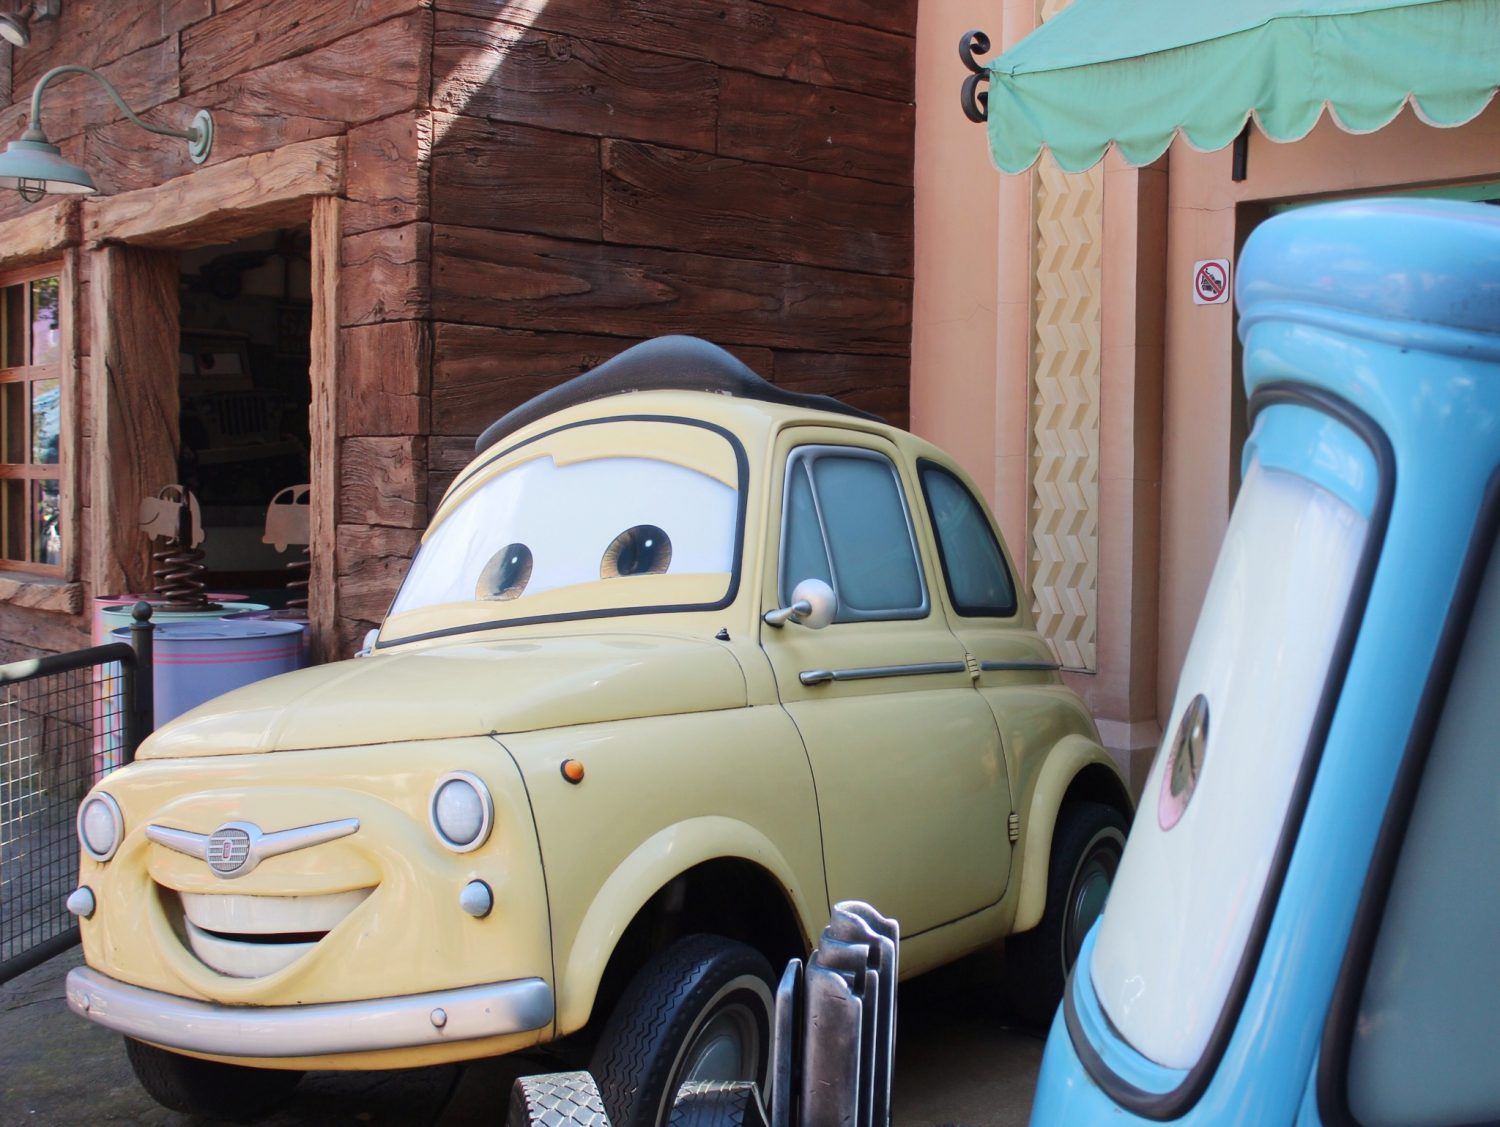 Walt Disney Studios Park Cars Land